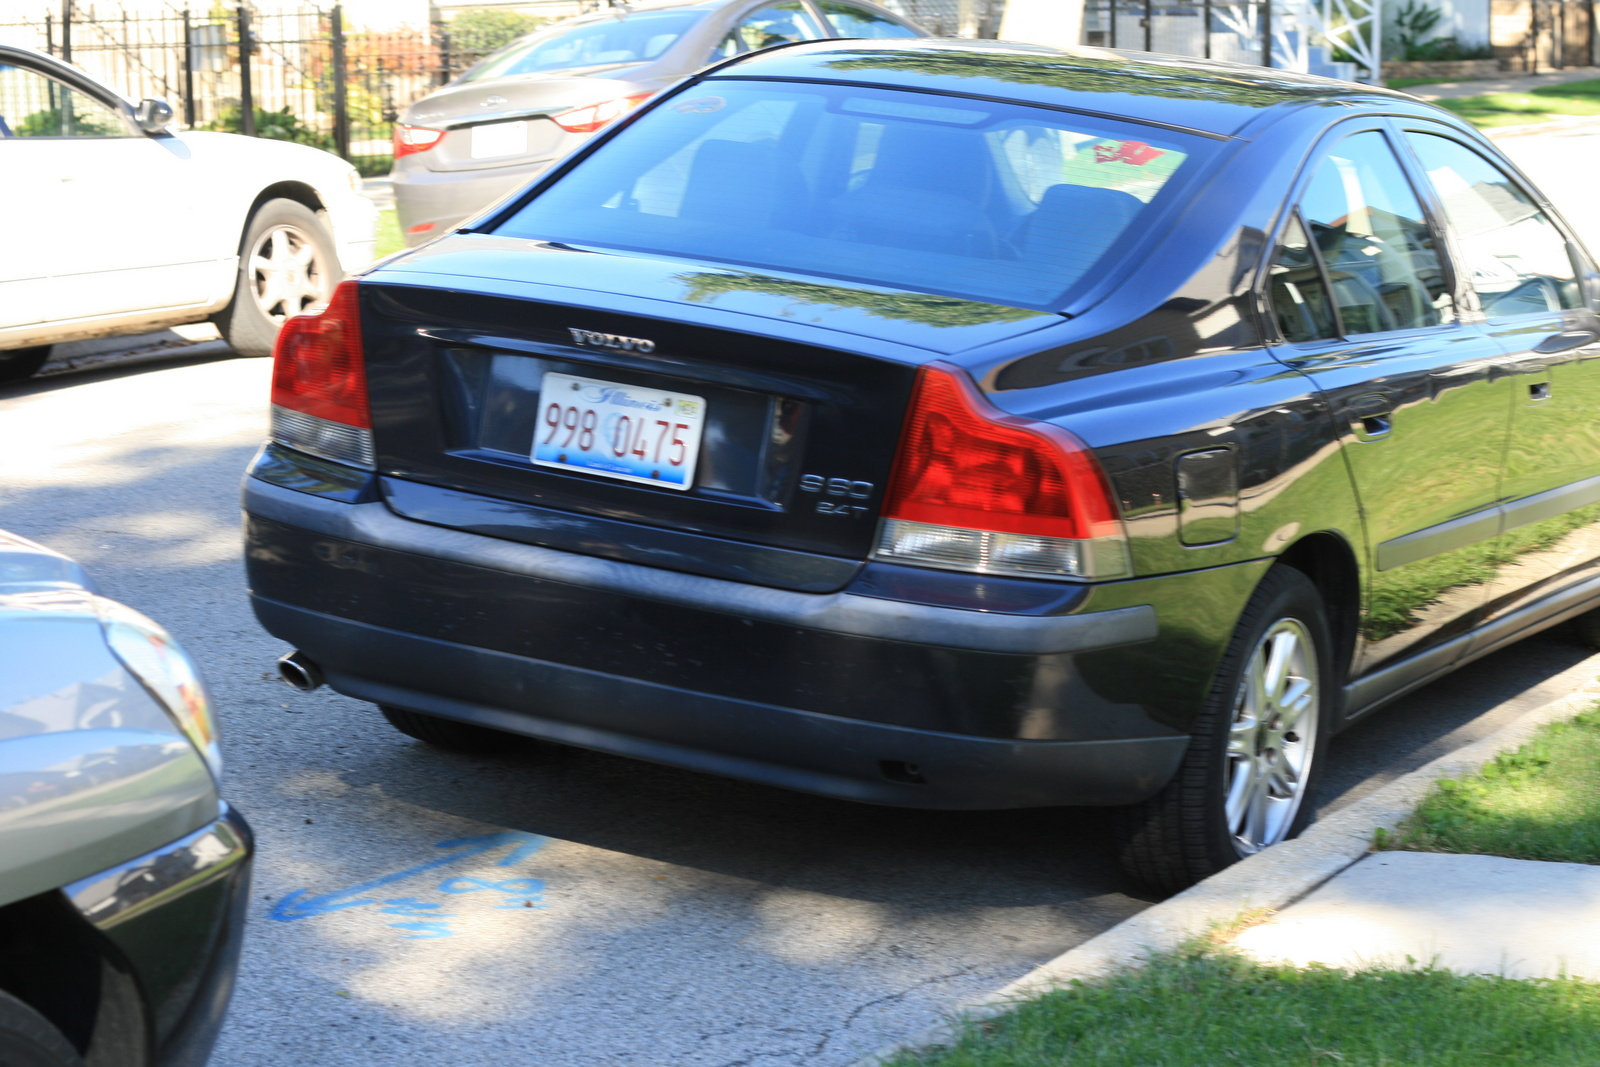 2002 Volvo S60 - Pictures